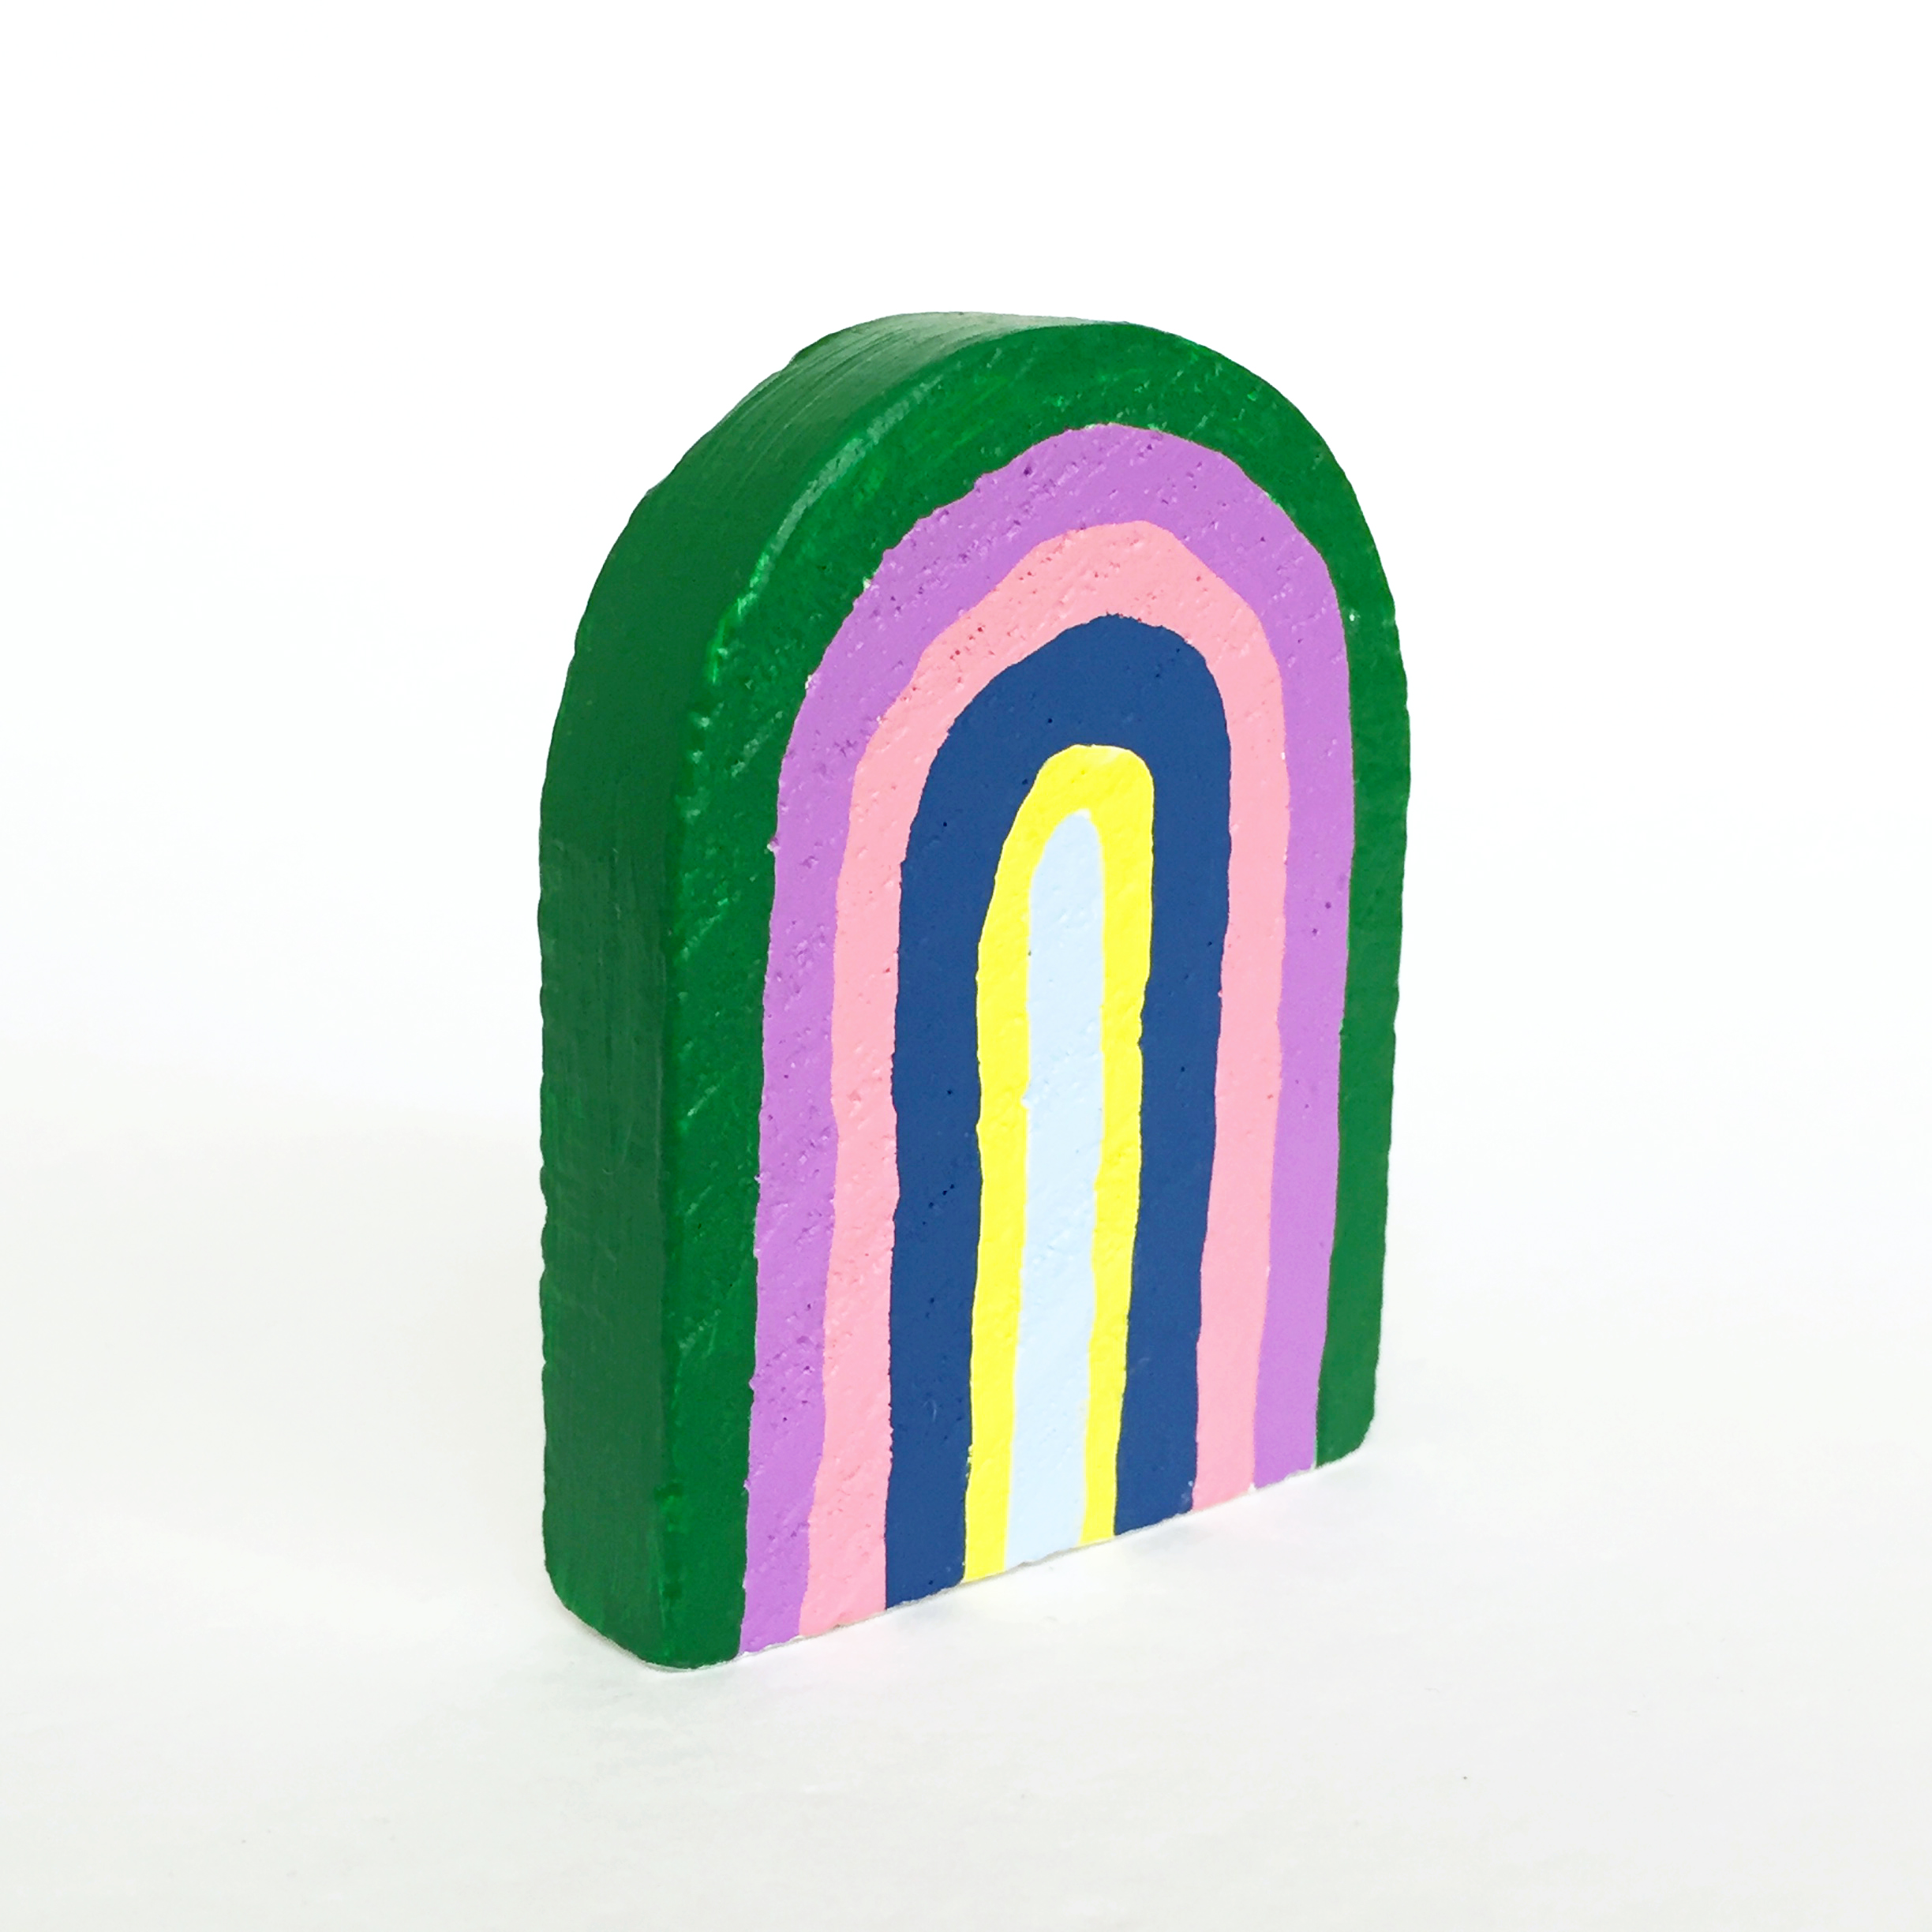 Rainbow #8, 2019, small object, found wood shape, acrylic paint, 65mm x 50mm